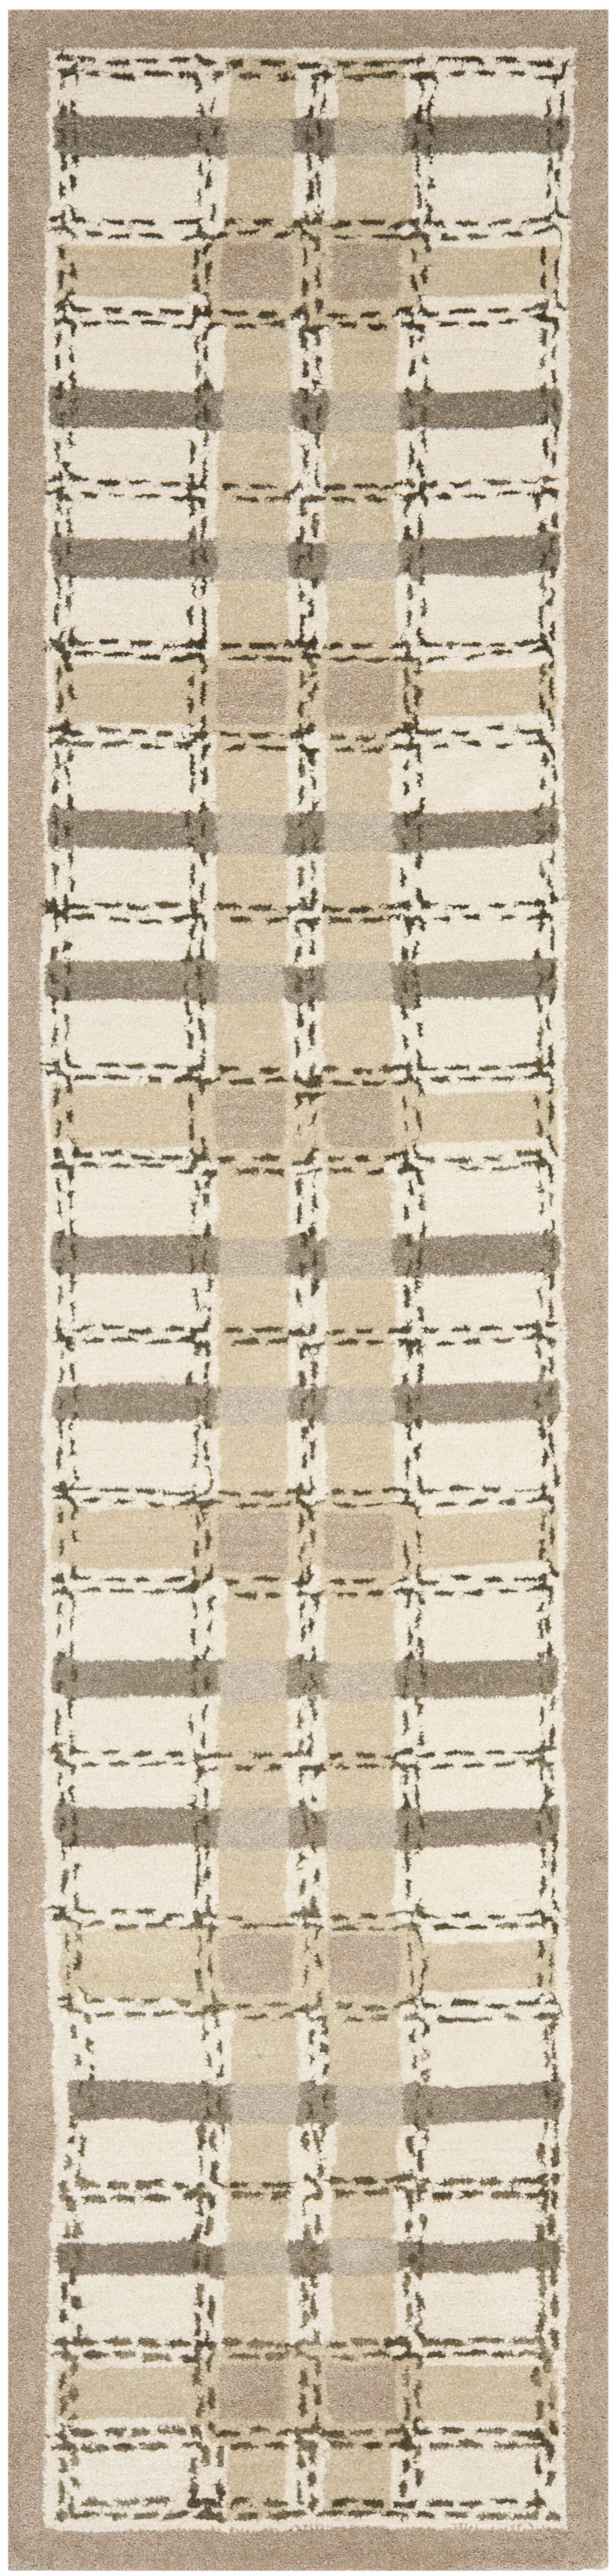 Colorweave Plaid Hand-Tufted Sharkey Gray Area Rug Rug Size: Runner 2'3